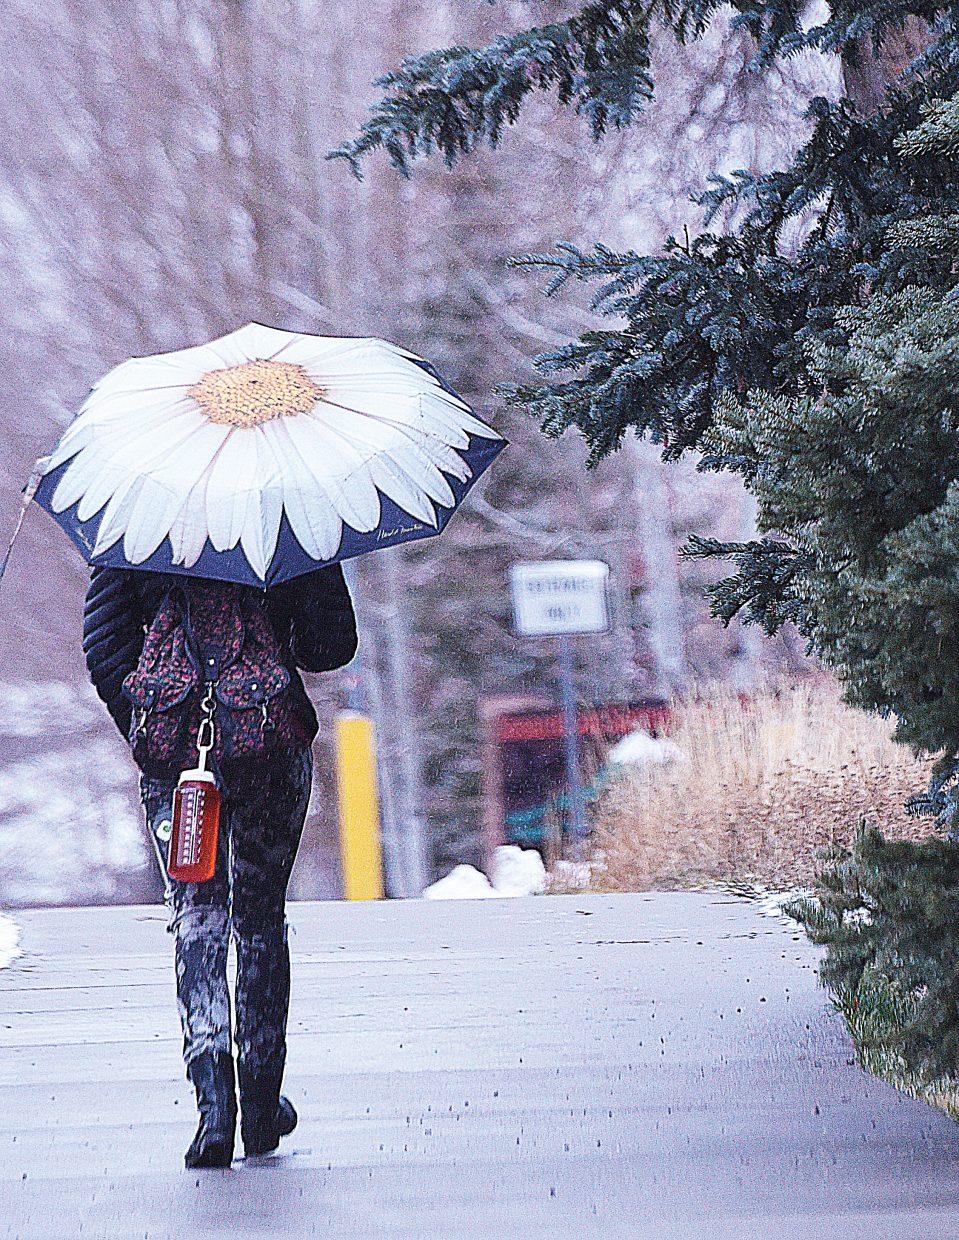 Steamboat Springs High School student Lilly Patterson's umbrella brings a little sunshine, or maybe a sunflower, into a rather gloomy day as she makes her way to school Tuesday morning.